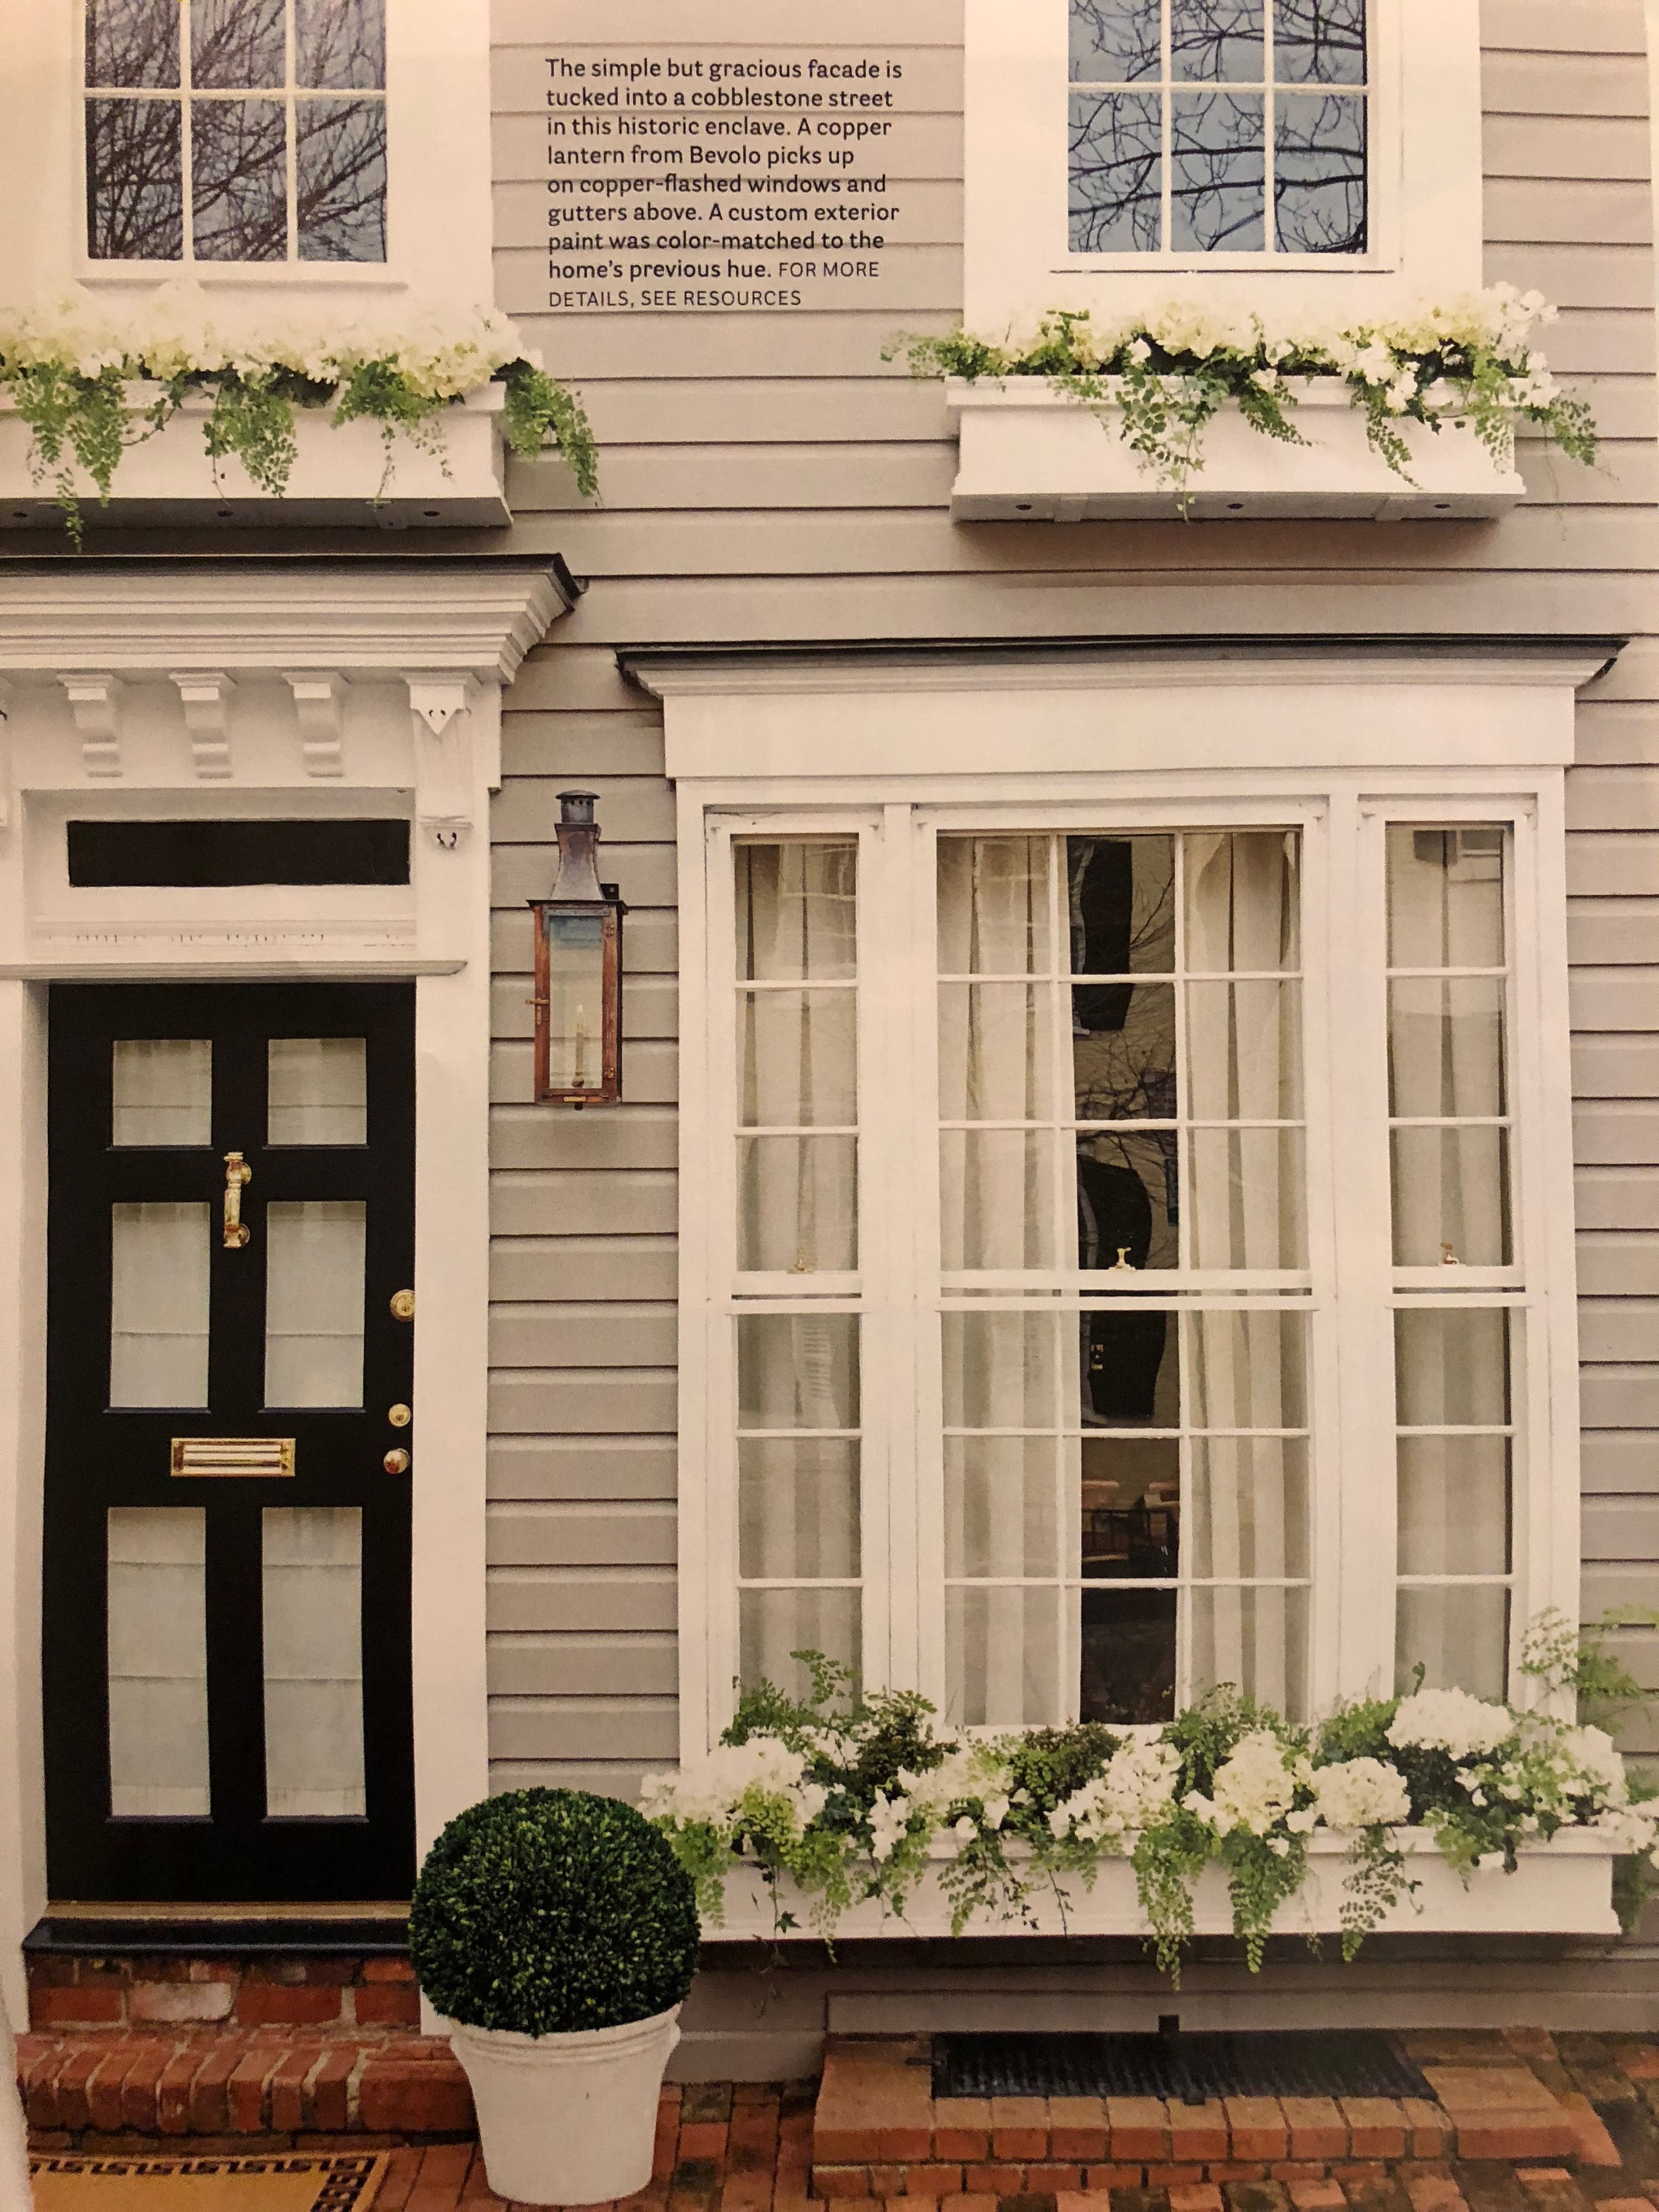 Decoration Facade De Maison Pin By Janie Legault On Home Exterior In 2018 Pinterest